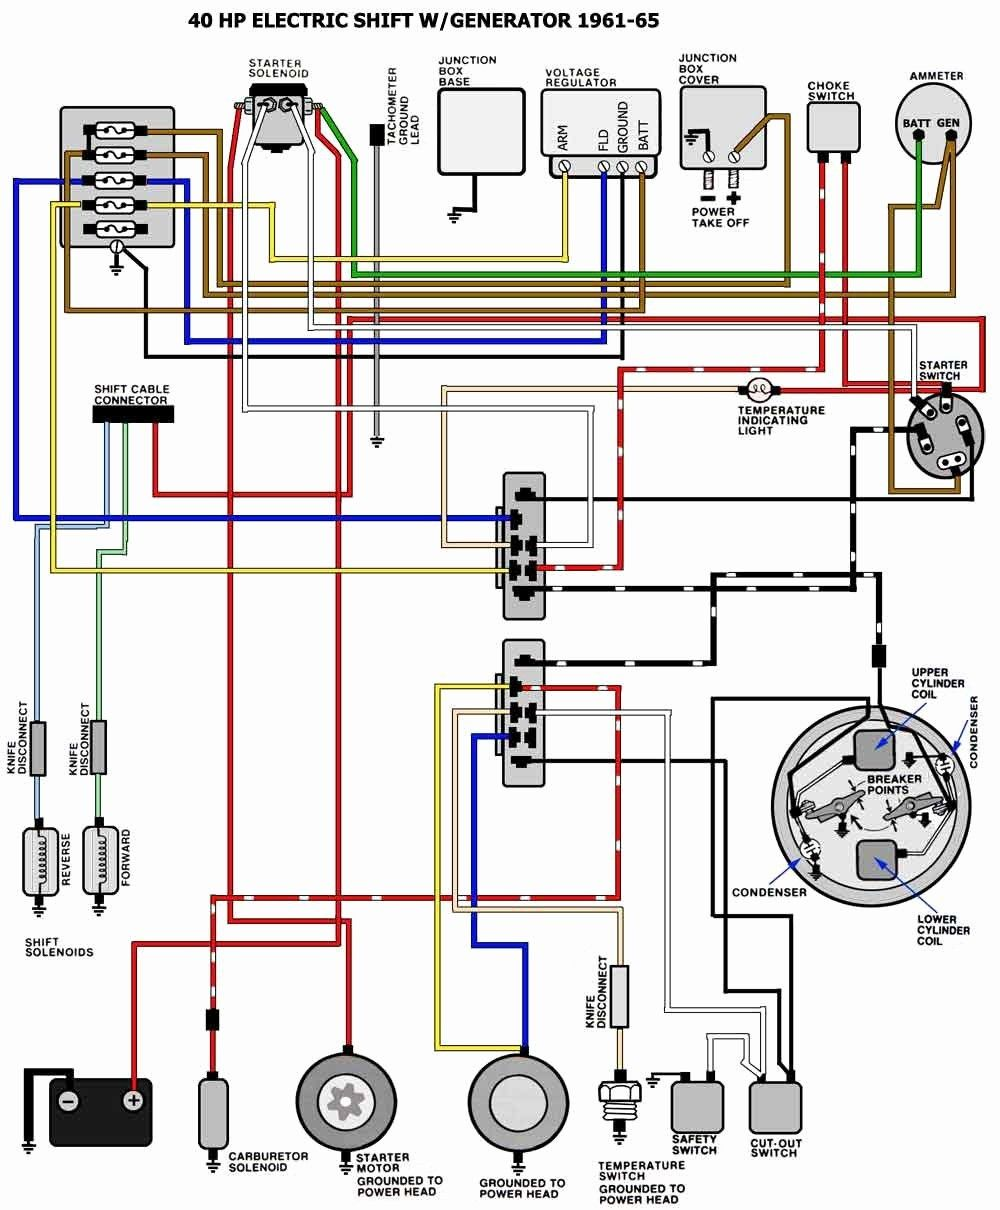 40 Hp Mercury Outboard Wiring Diagram New | Mercury outboard, Boat wiring,  Diagram | 1998 40 Hp Mercury Wiring Diagram |  | Pinterest